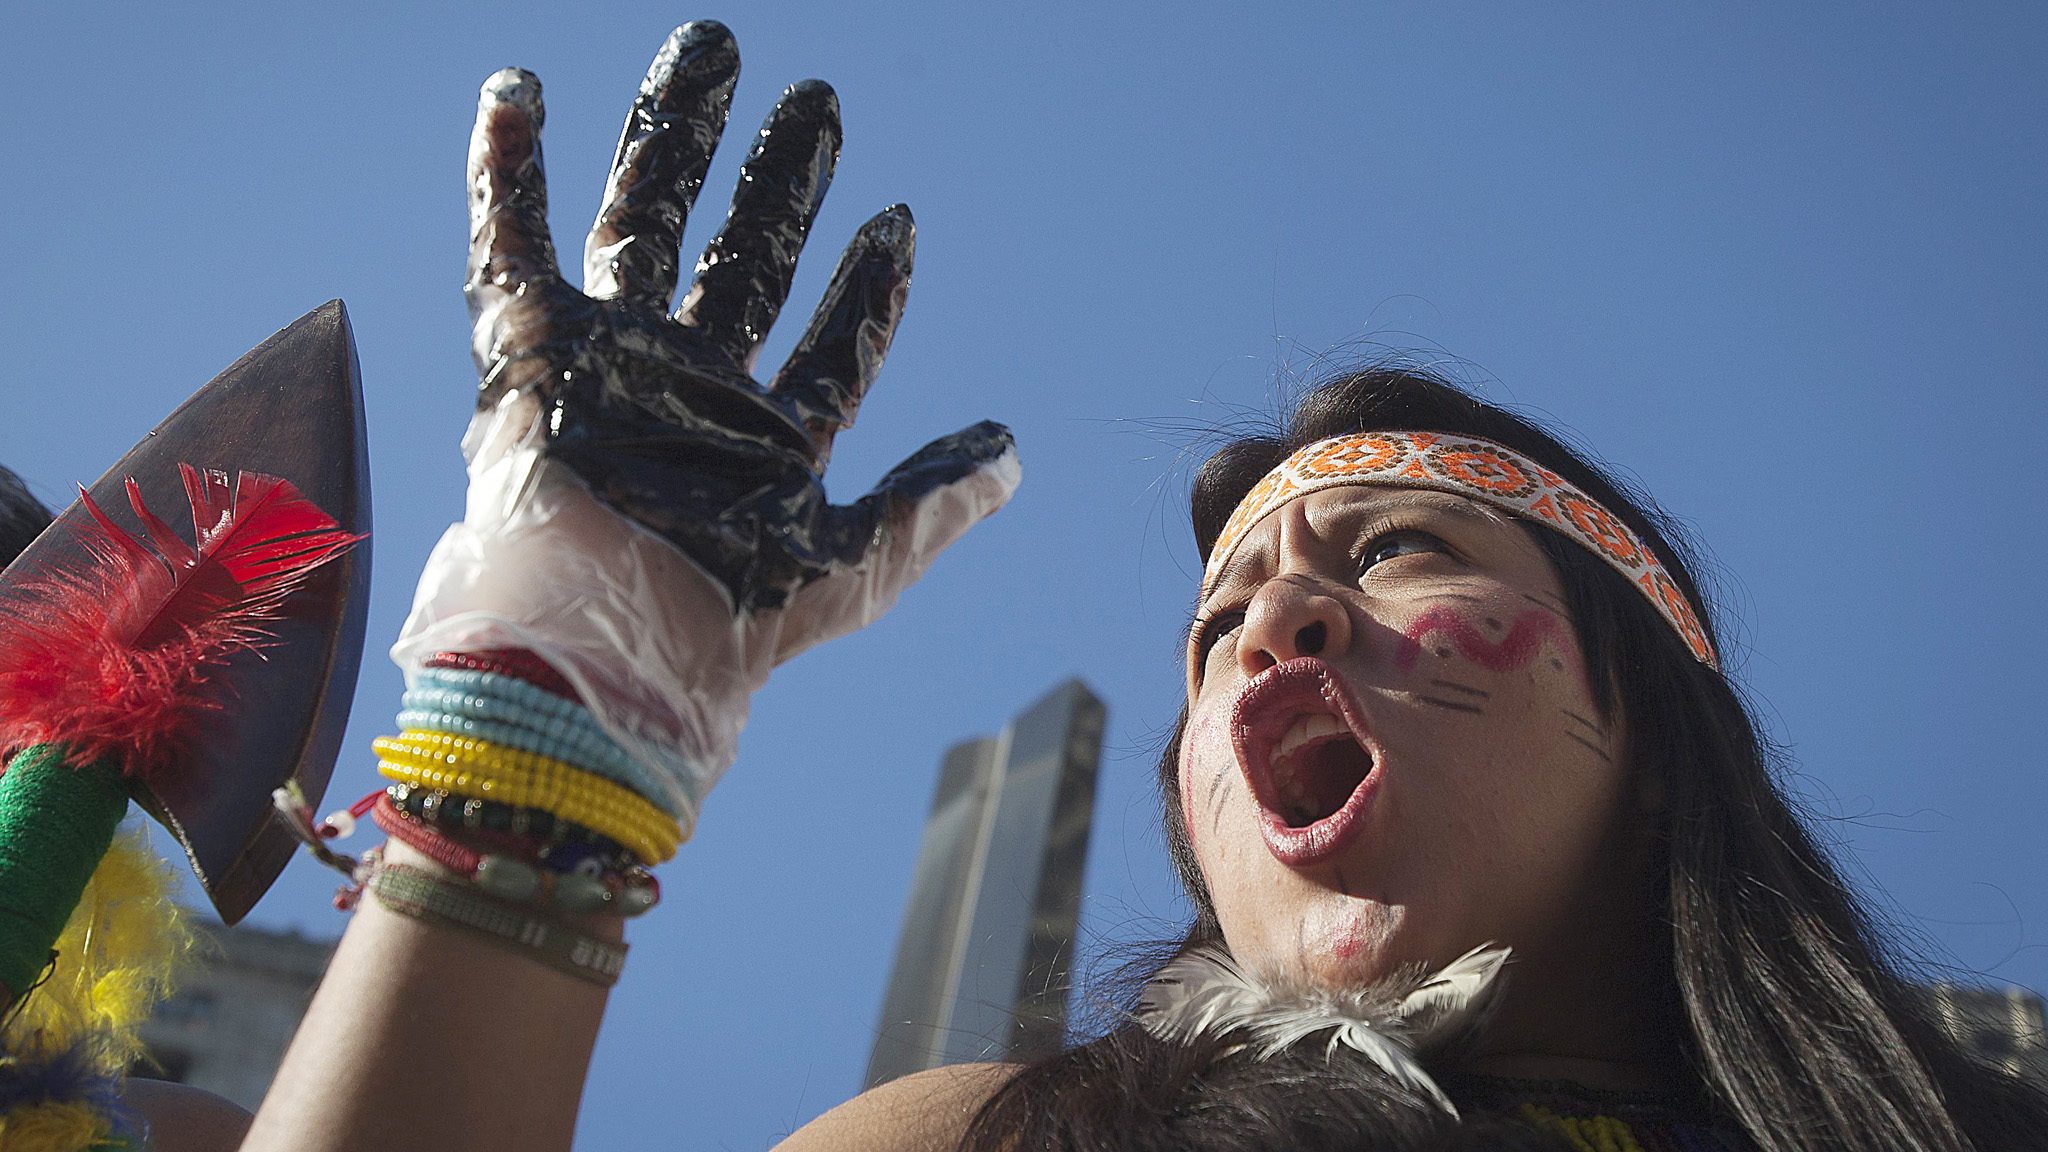 A protester from Ecuador holds up an oil covered hand as she demonstrates against Chevron's Racketeer Influenced and Corrupt Organizations trial in New York...A protester from Ecuador holds up an oil covered hand as she demonstrates against Chevron's Racketeer Influenced and Corrupt Organizations (RICO) trial in New York, October 15, 2013. Chevron Corp will try to convince a U.S. judge this week that a group of Ecuadorean villagers and their U.S. lawyer used bribery to win an $18 billion judgment against Chevron from a court in Ecuador, in the latest chapter in a long-running fight over pollution in the Amazon jungle. In a trial starting Tuesday, the oil company is asking a federal court in New York to prevent the villagers and their Harvard-educated lawyer, Steven Donziger, from using U.S. courts to enforce the Ecuadorean judgment.  REUTERS/Carlo Allegri (UNITED STATES -